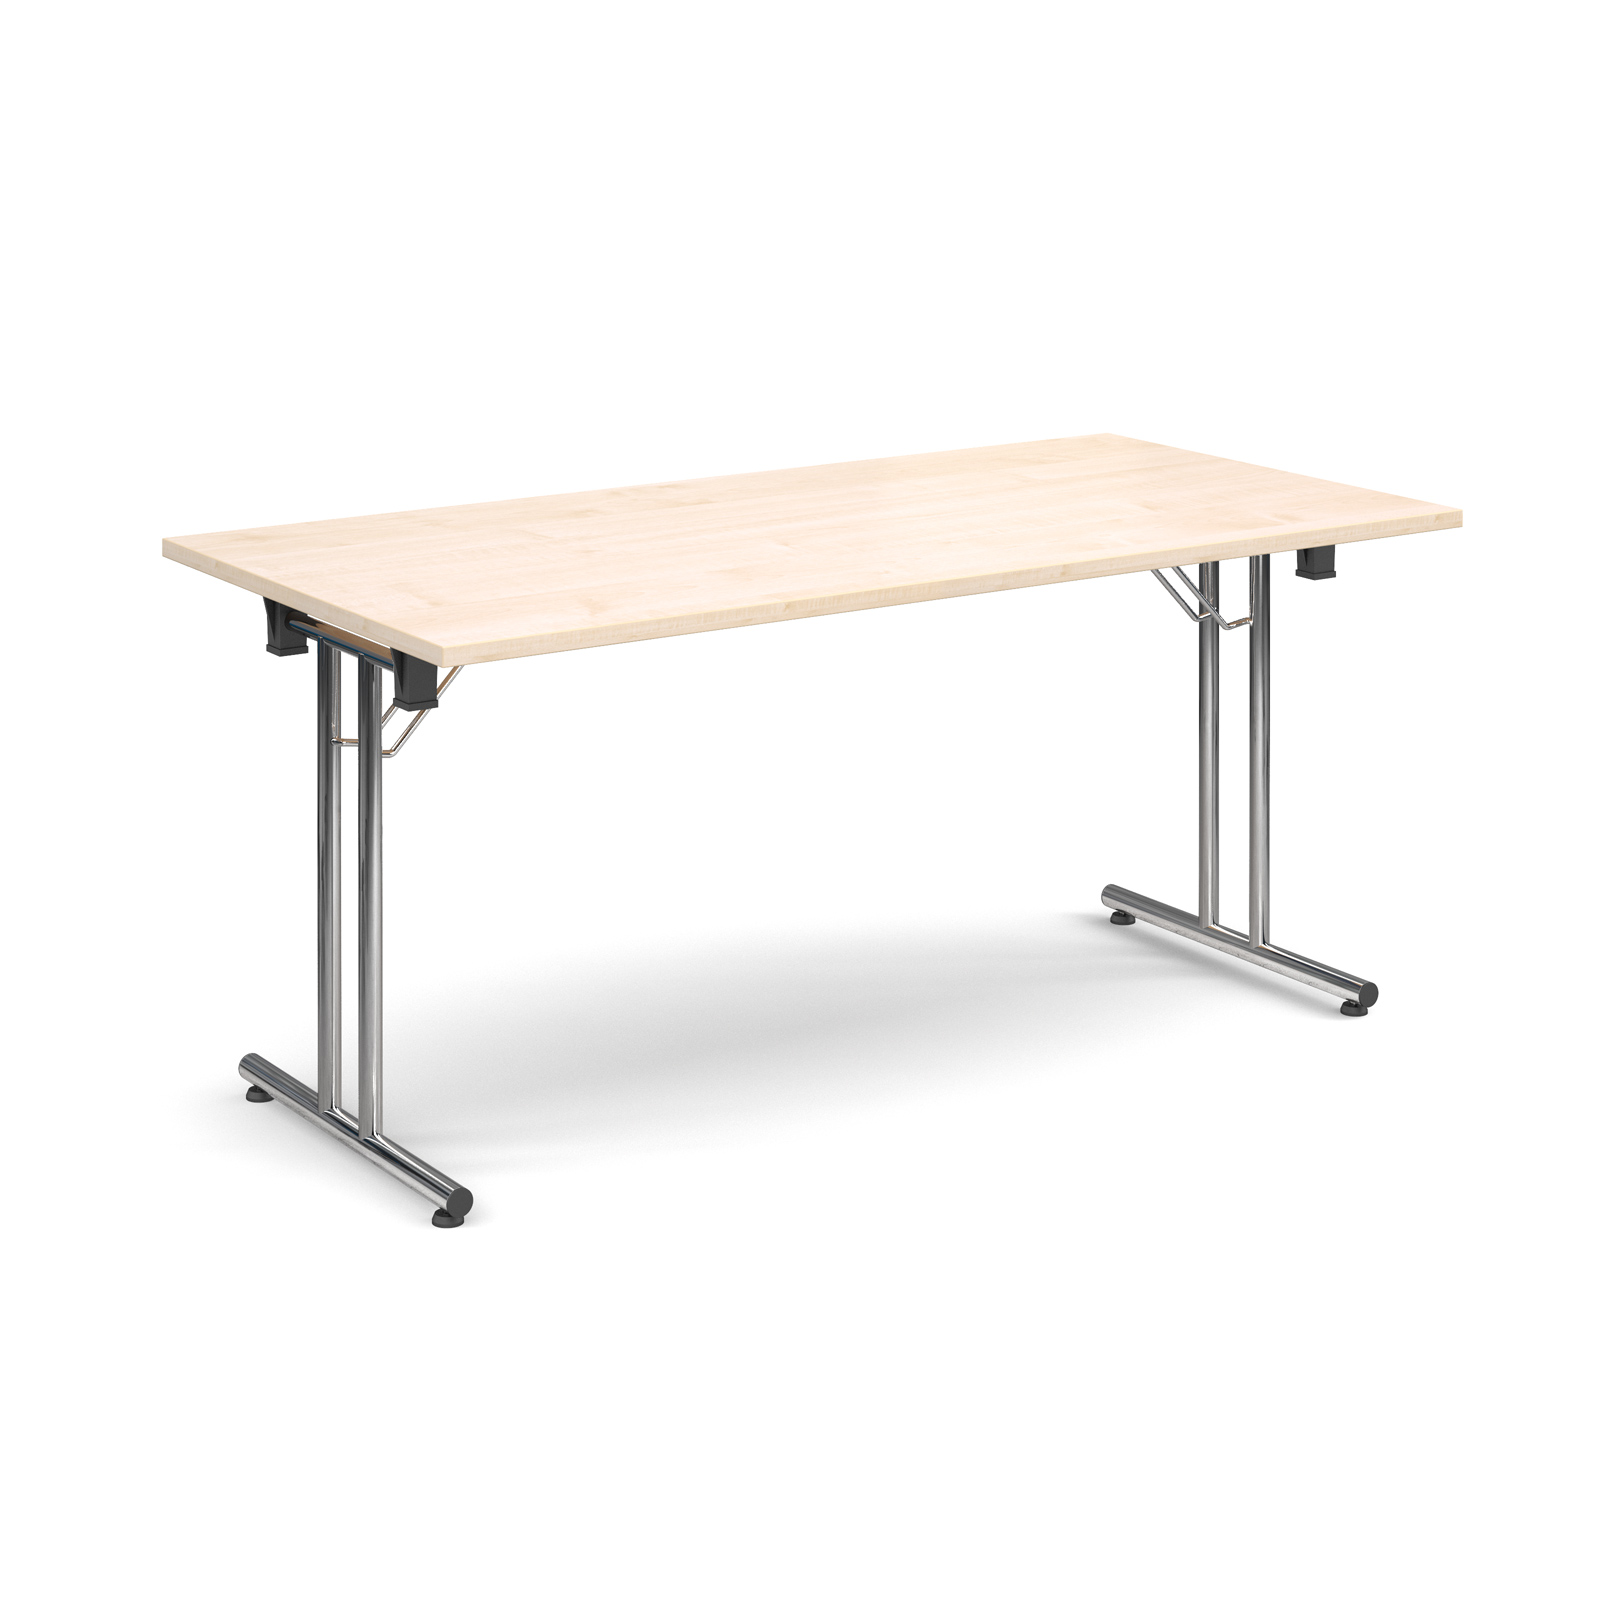 Rectangular deluxe folding leg table 1600mm x 800mm - maple